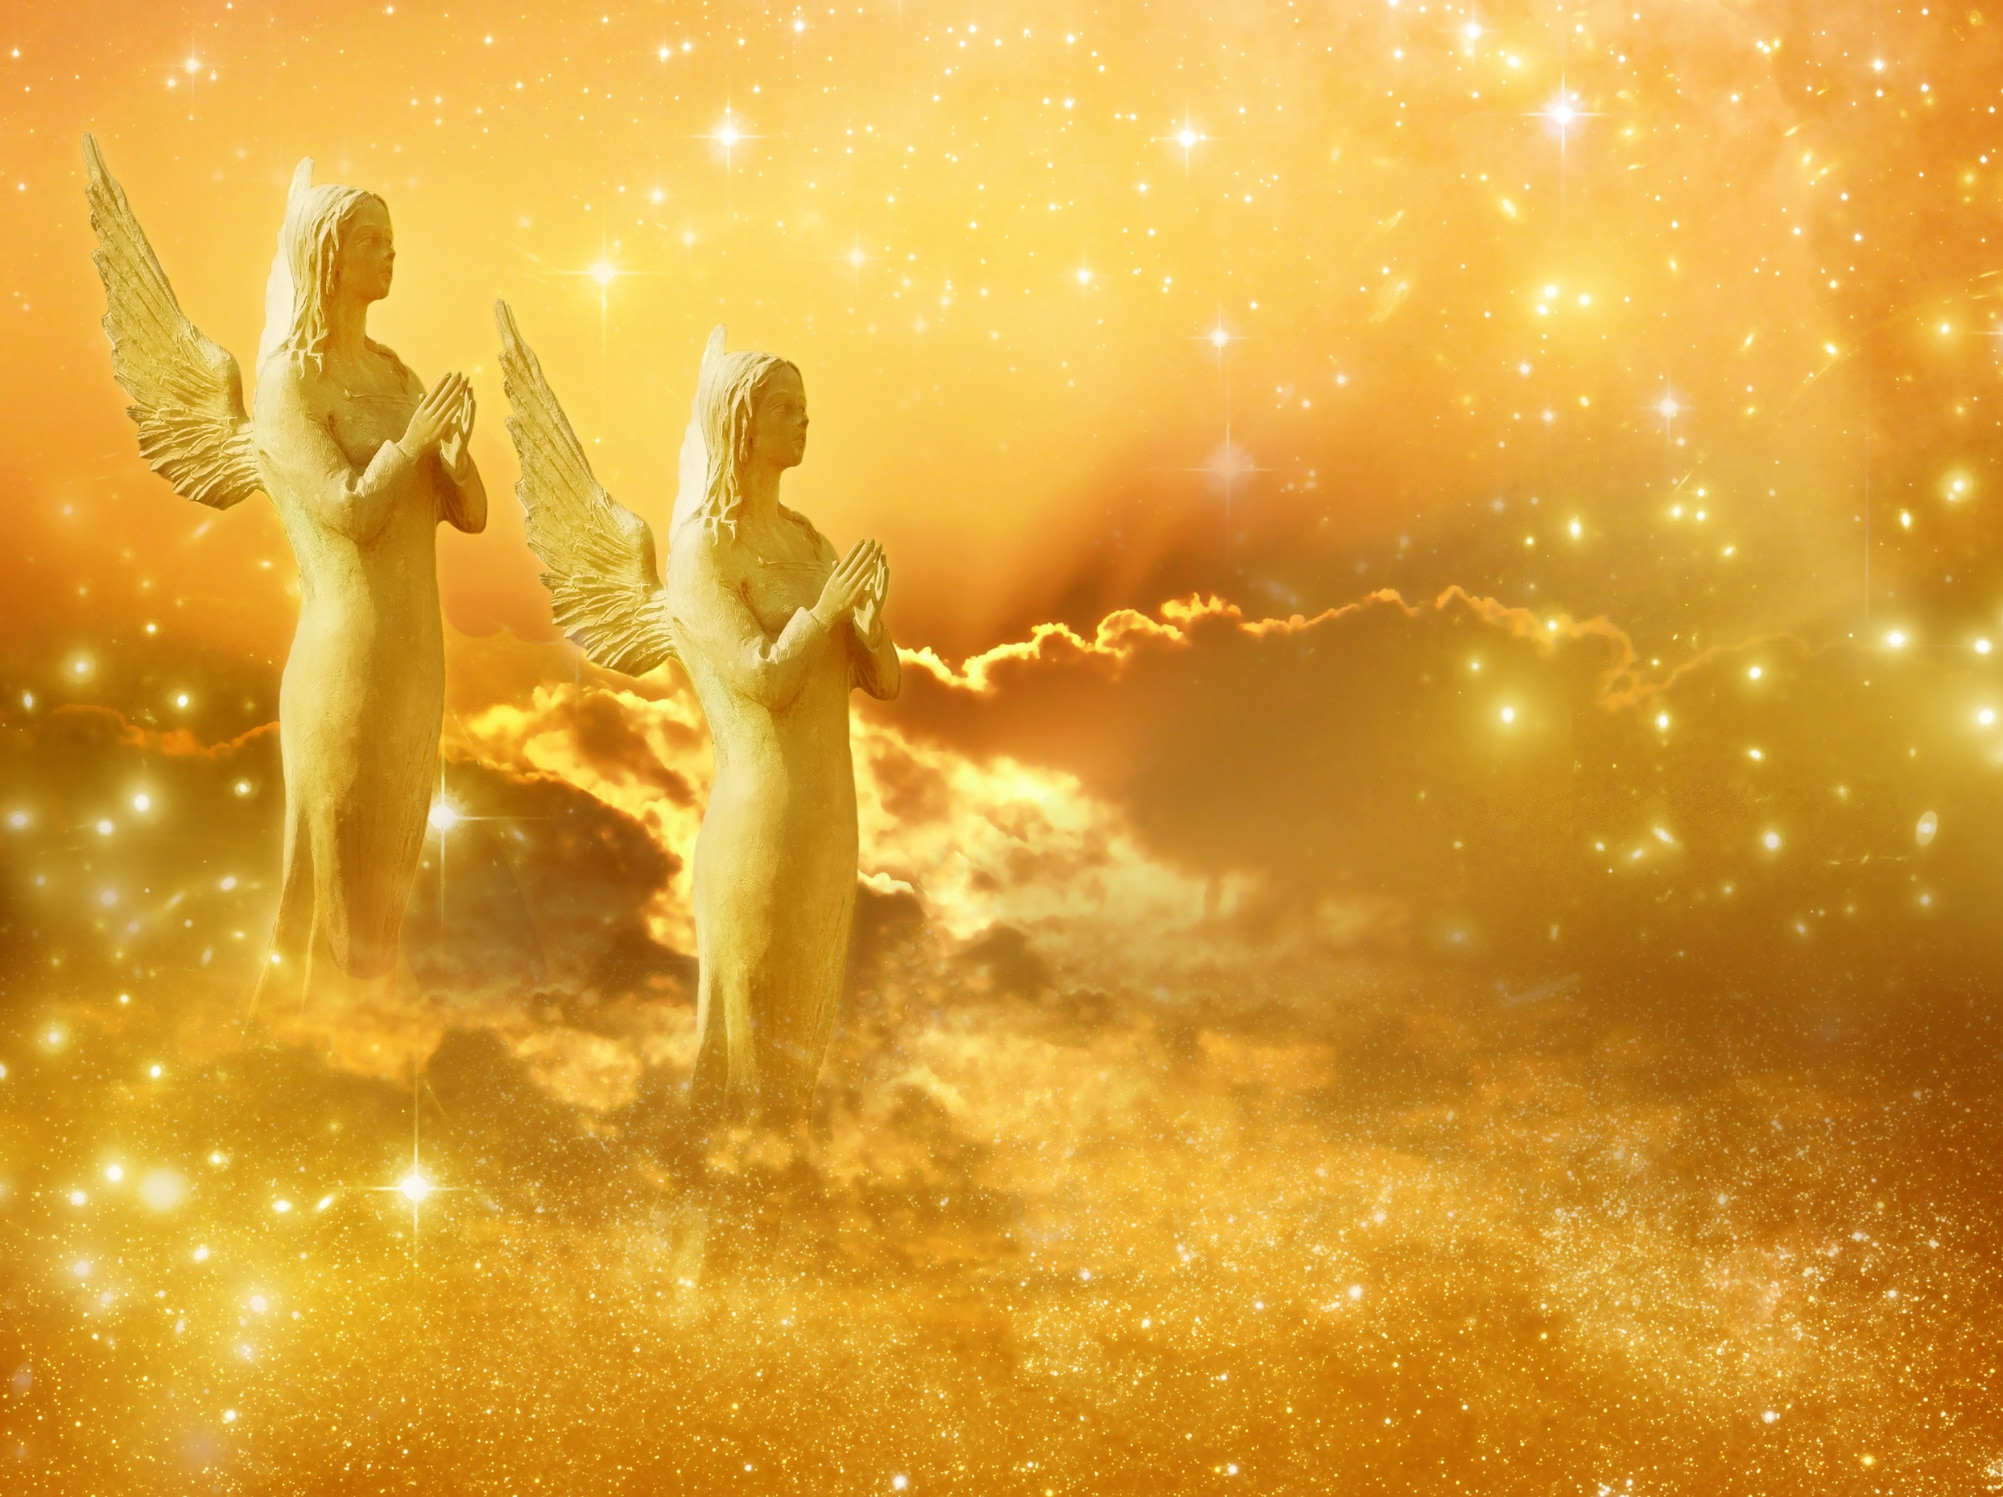 VIDEO: Moments that Matter – How Do Angels Help Us in Daily Life?